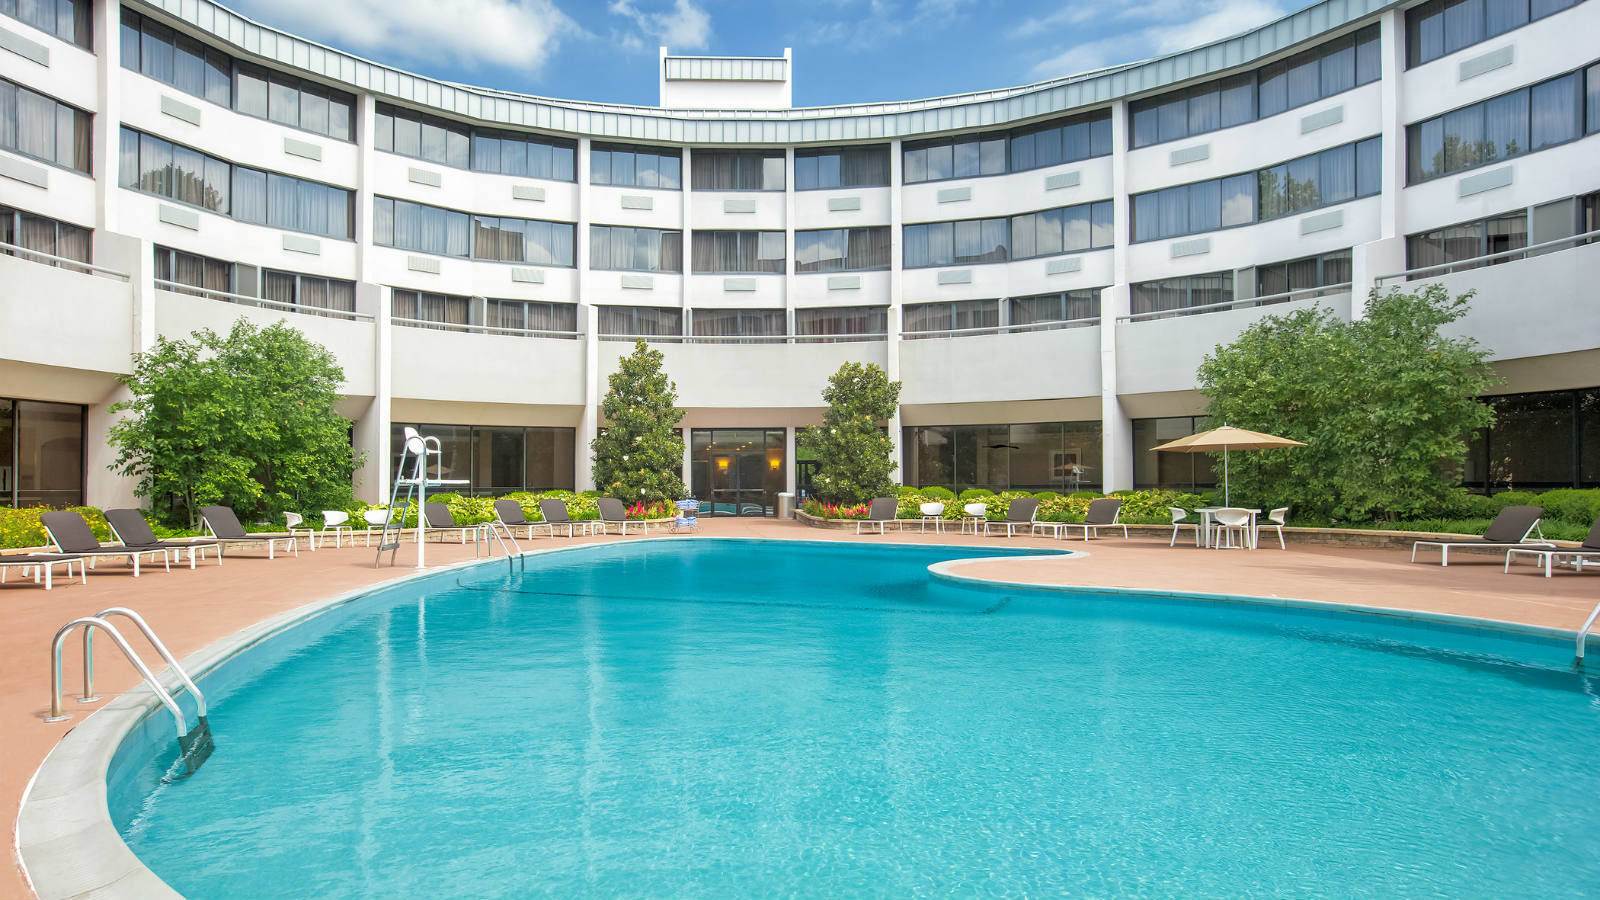 Reston Hotel Features - Outdoor Pool and Sun Deck